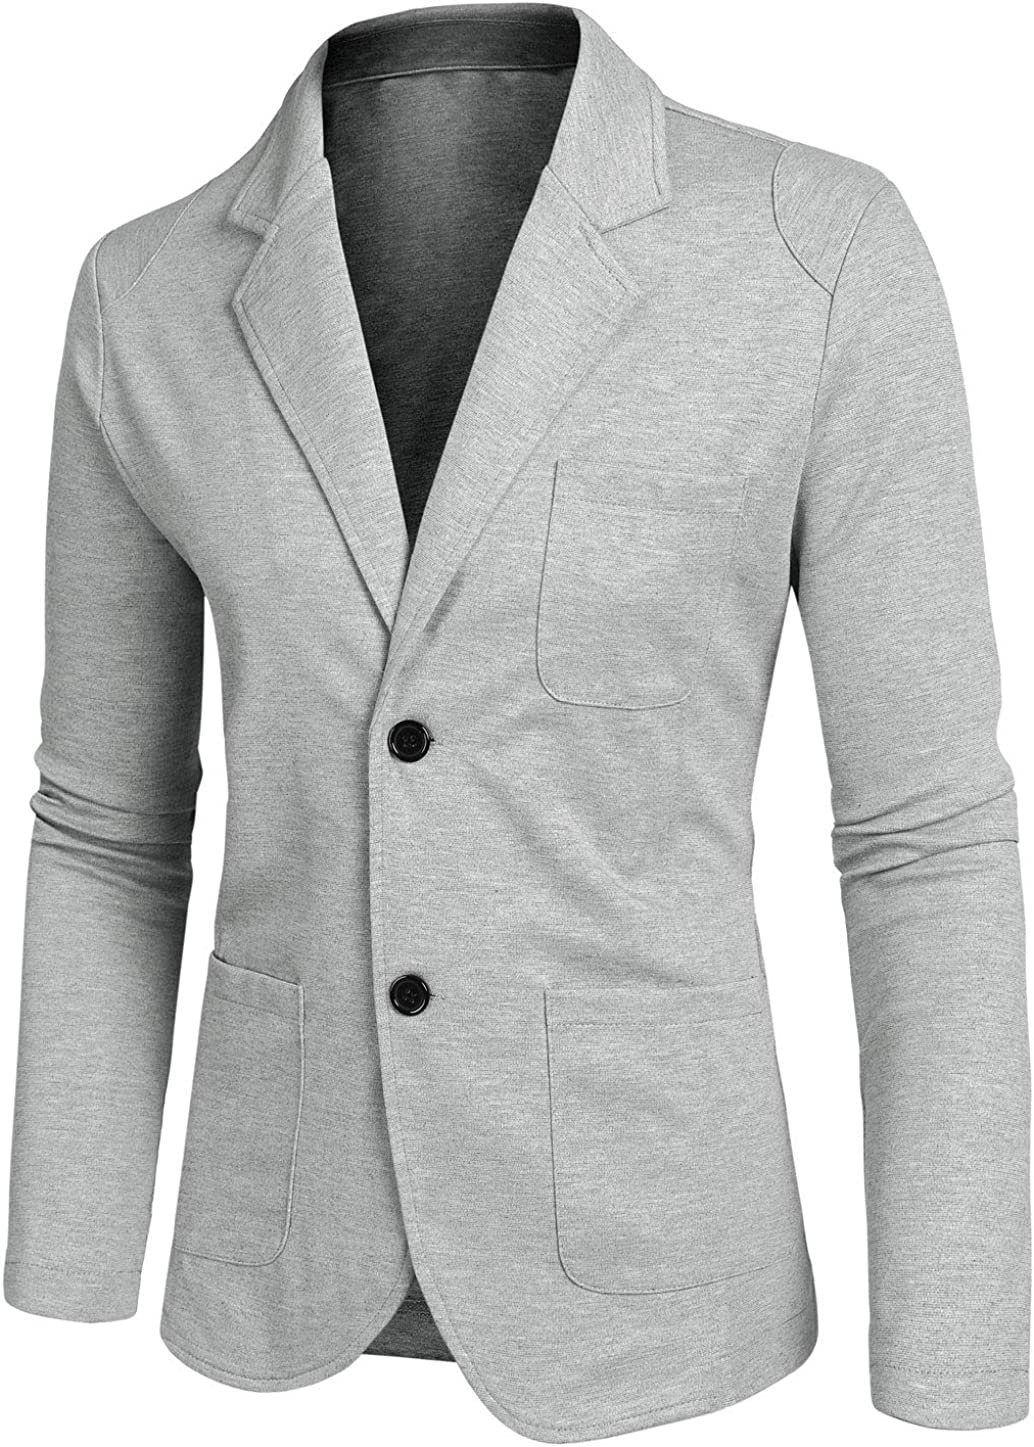 uxcell Ranking TOP18 Men's Casual Sports favorite Coat Lightweight Button Slim Fit Card